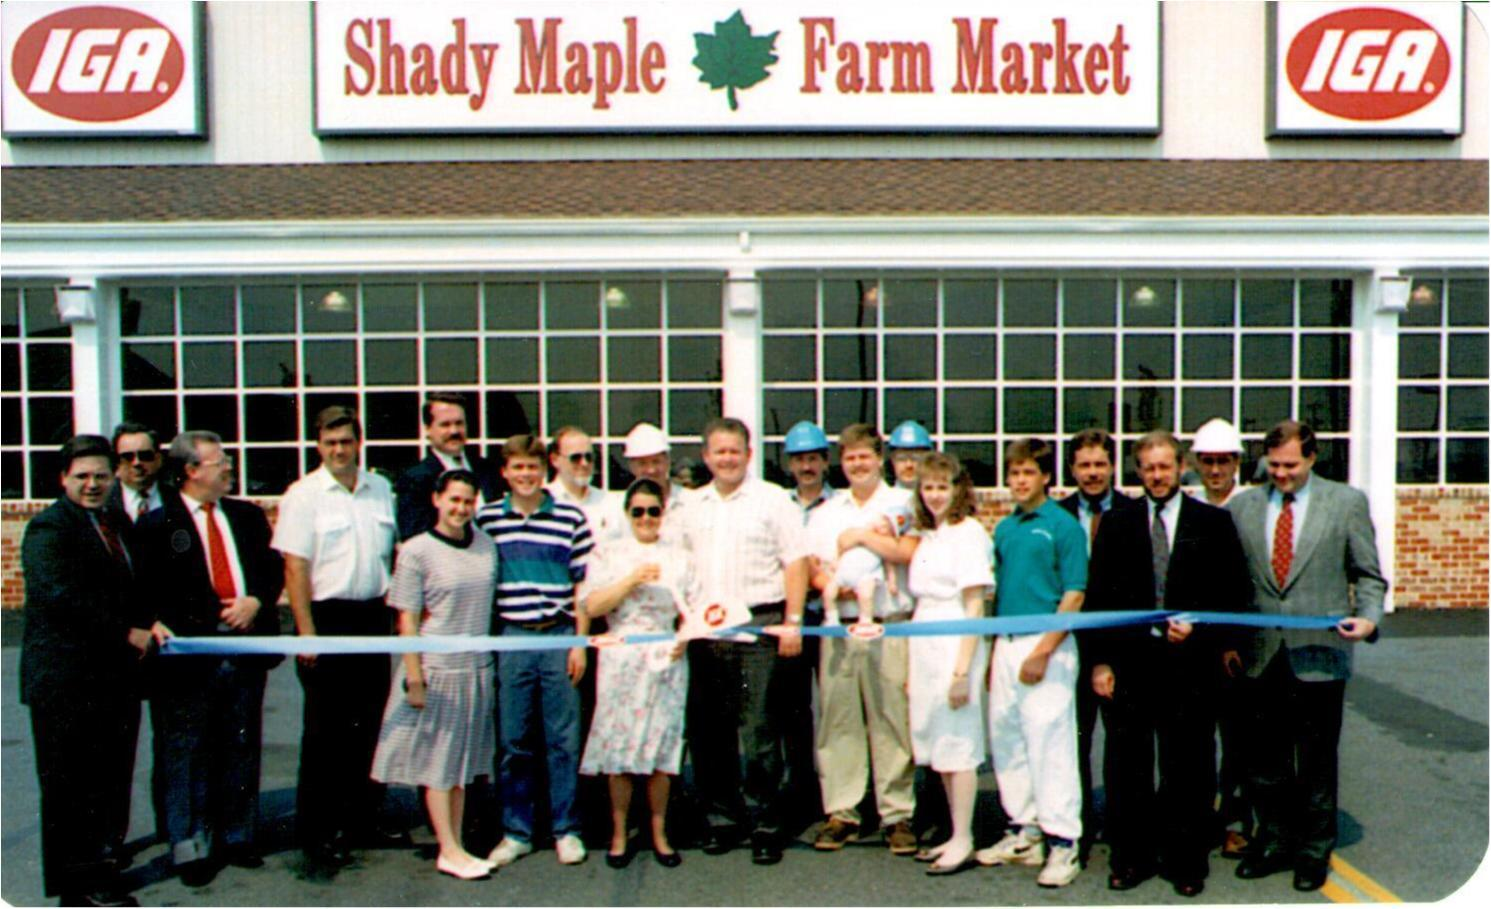 128-Ribbon-Cutting-for-Shady-Maple-Farm-Market-Renovation-1992